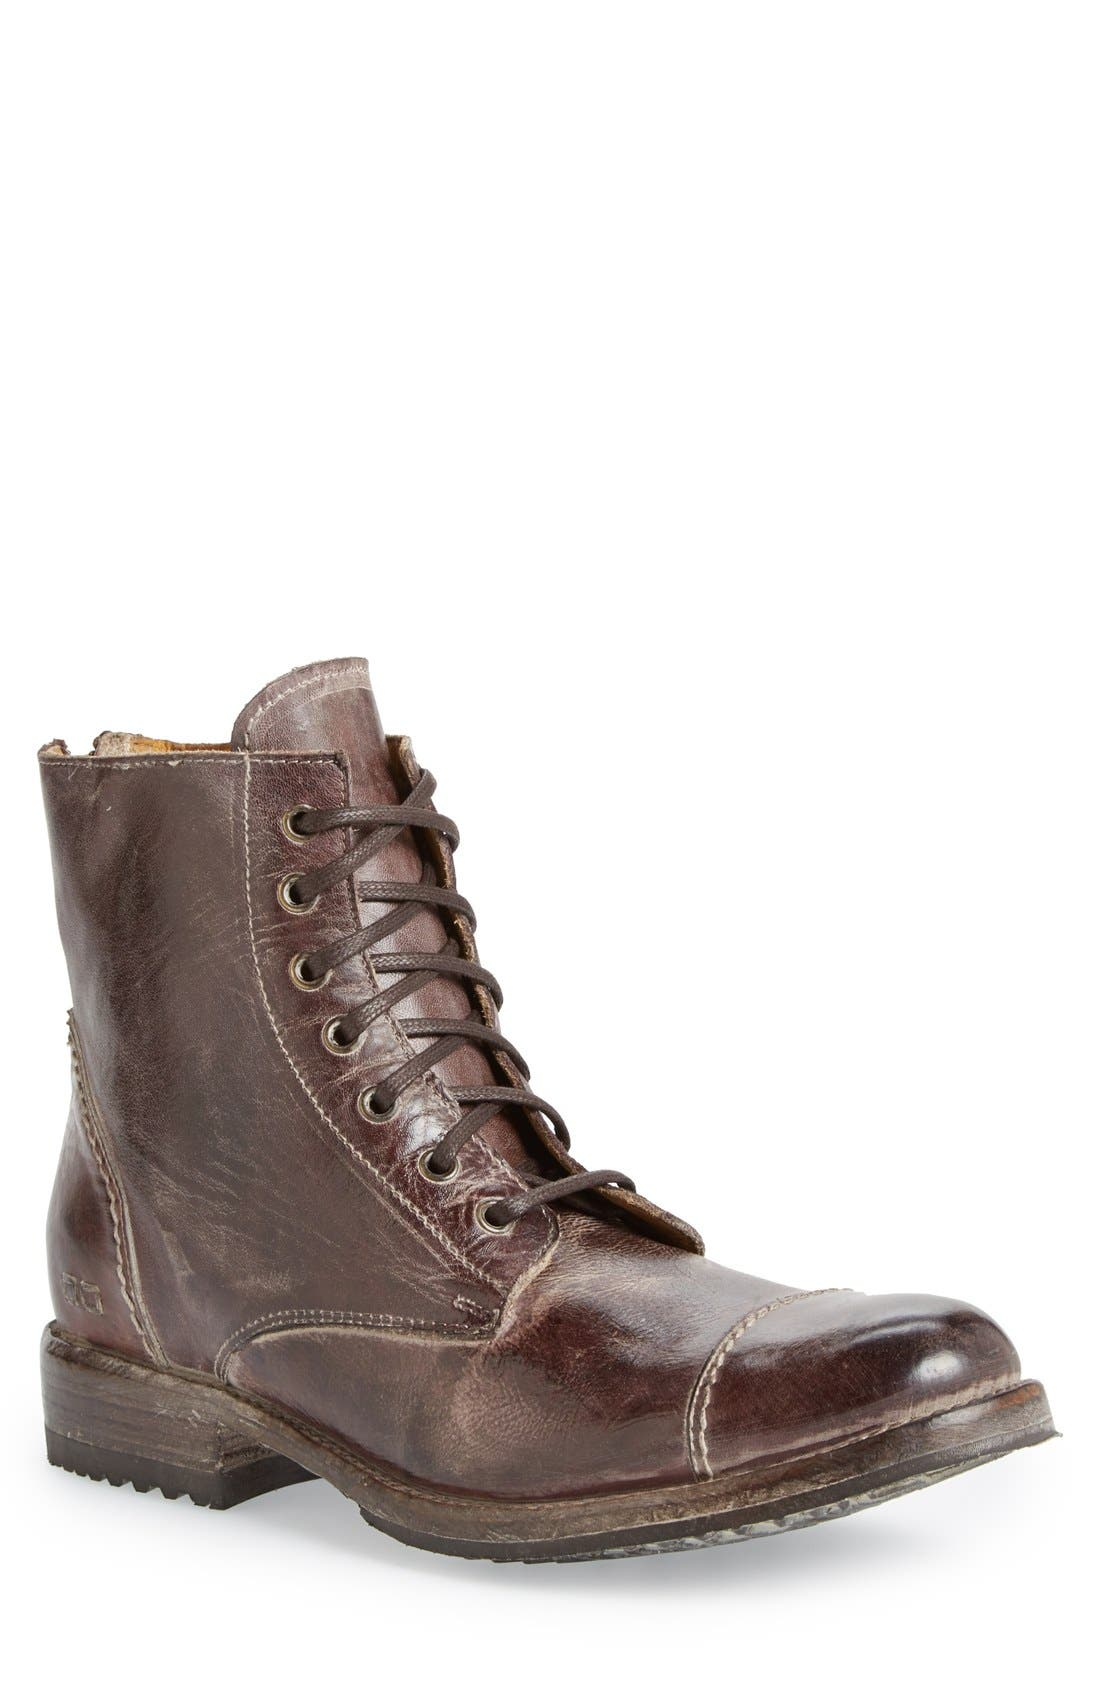 Main Image - Bed Stu 'Protégé' Cap Toe Boot (Men)